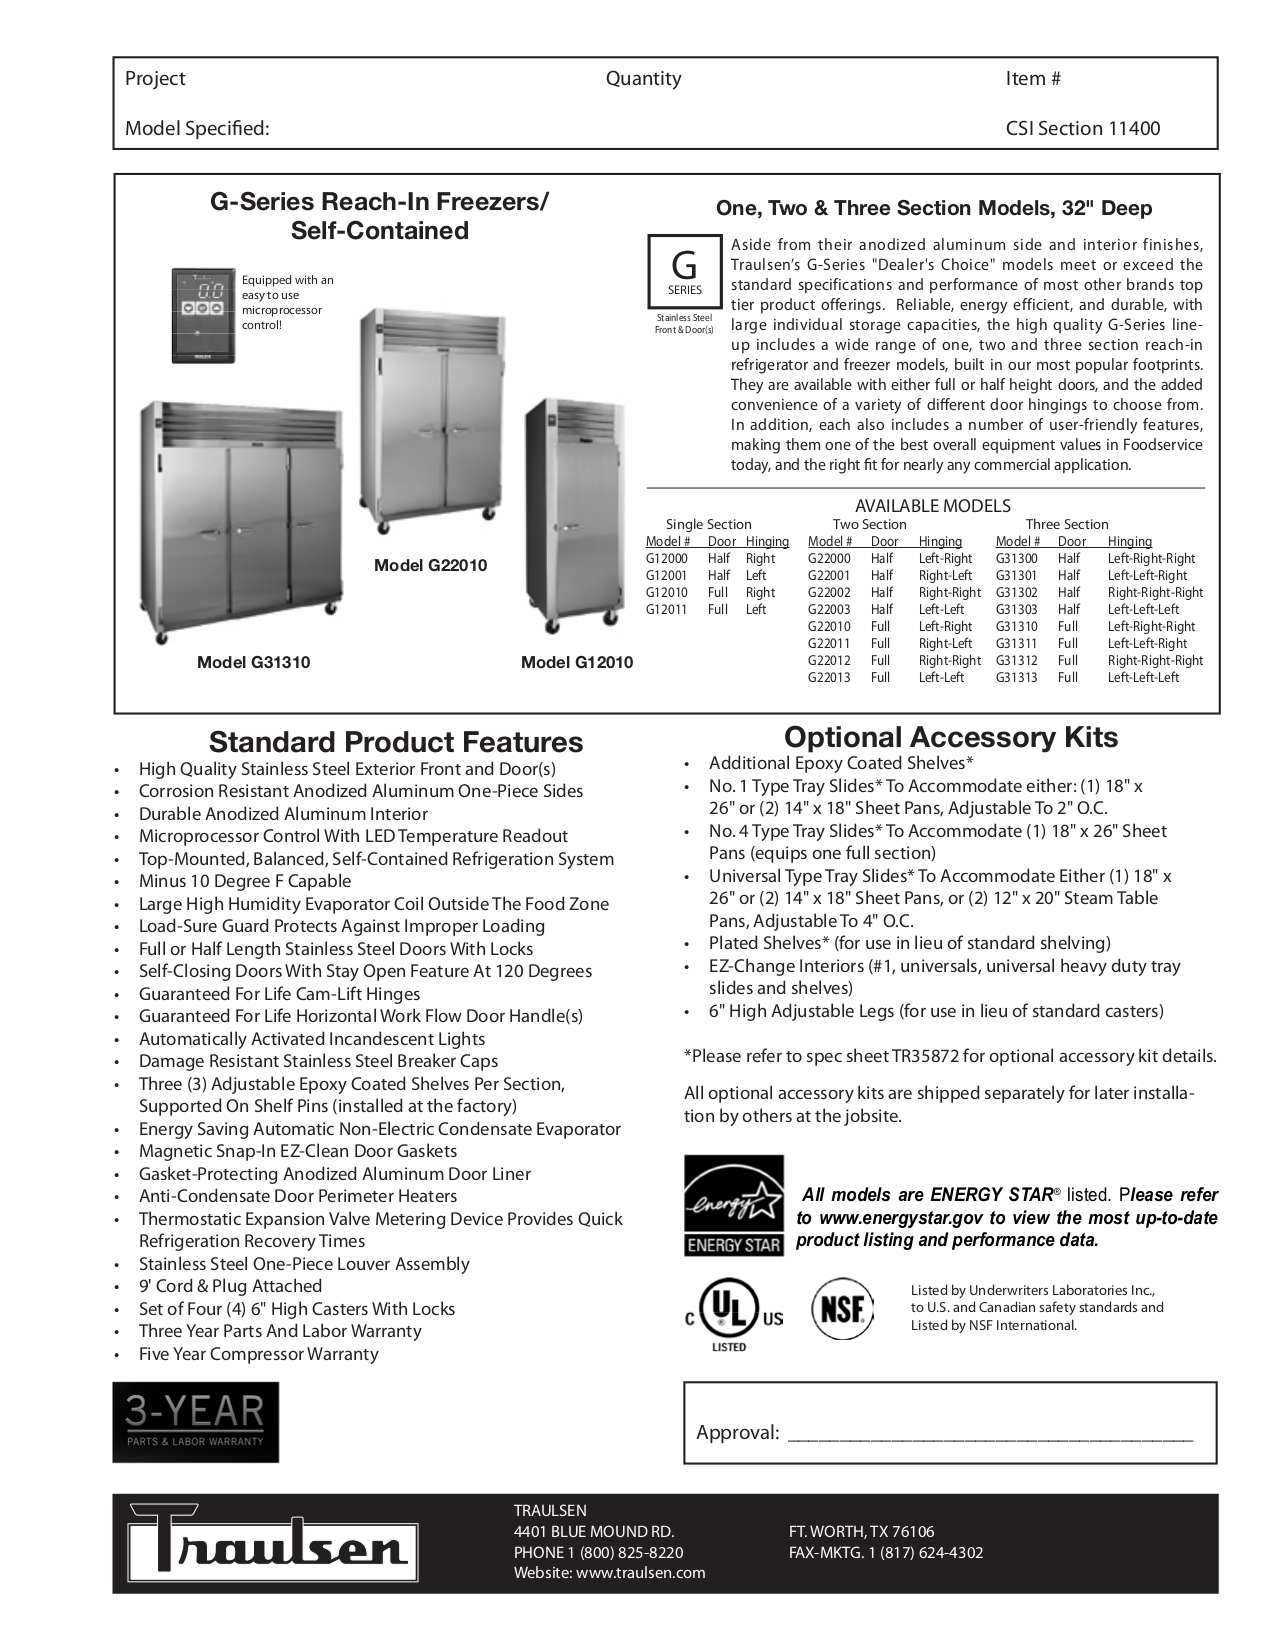 fisher and paykel freezer manual